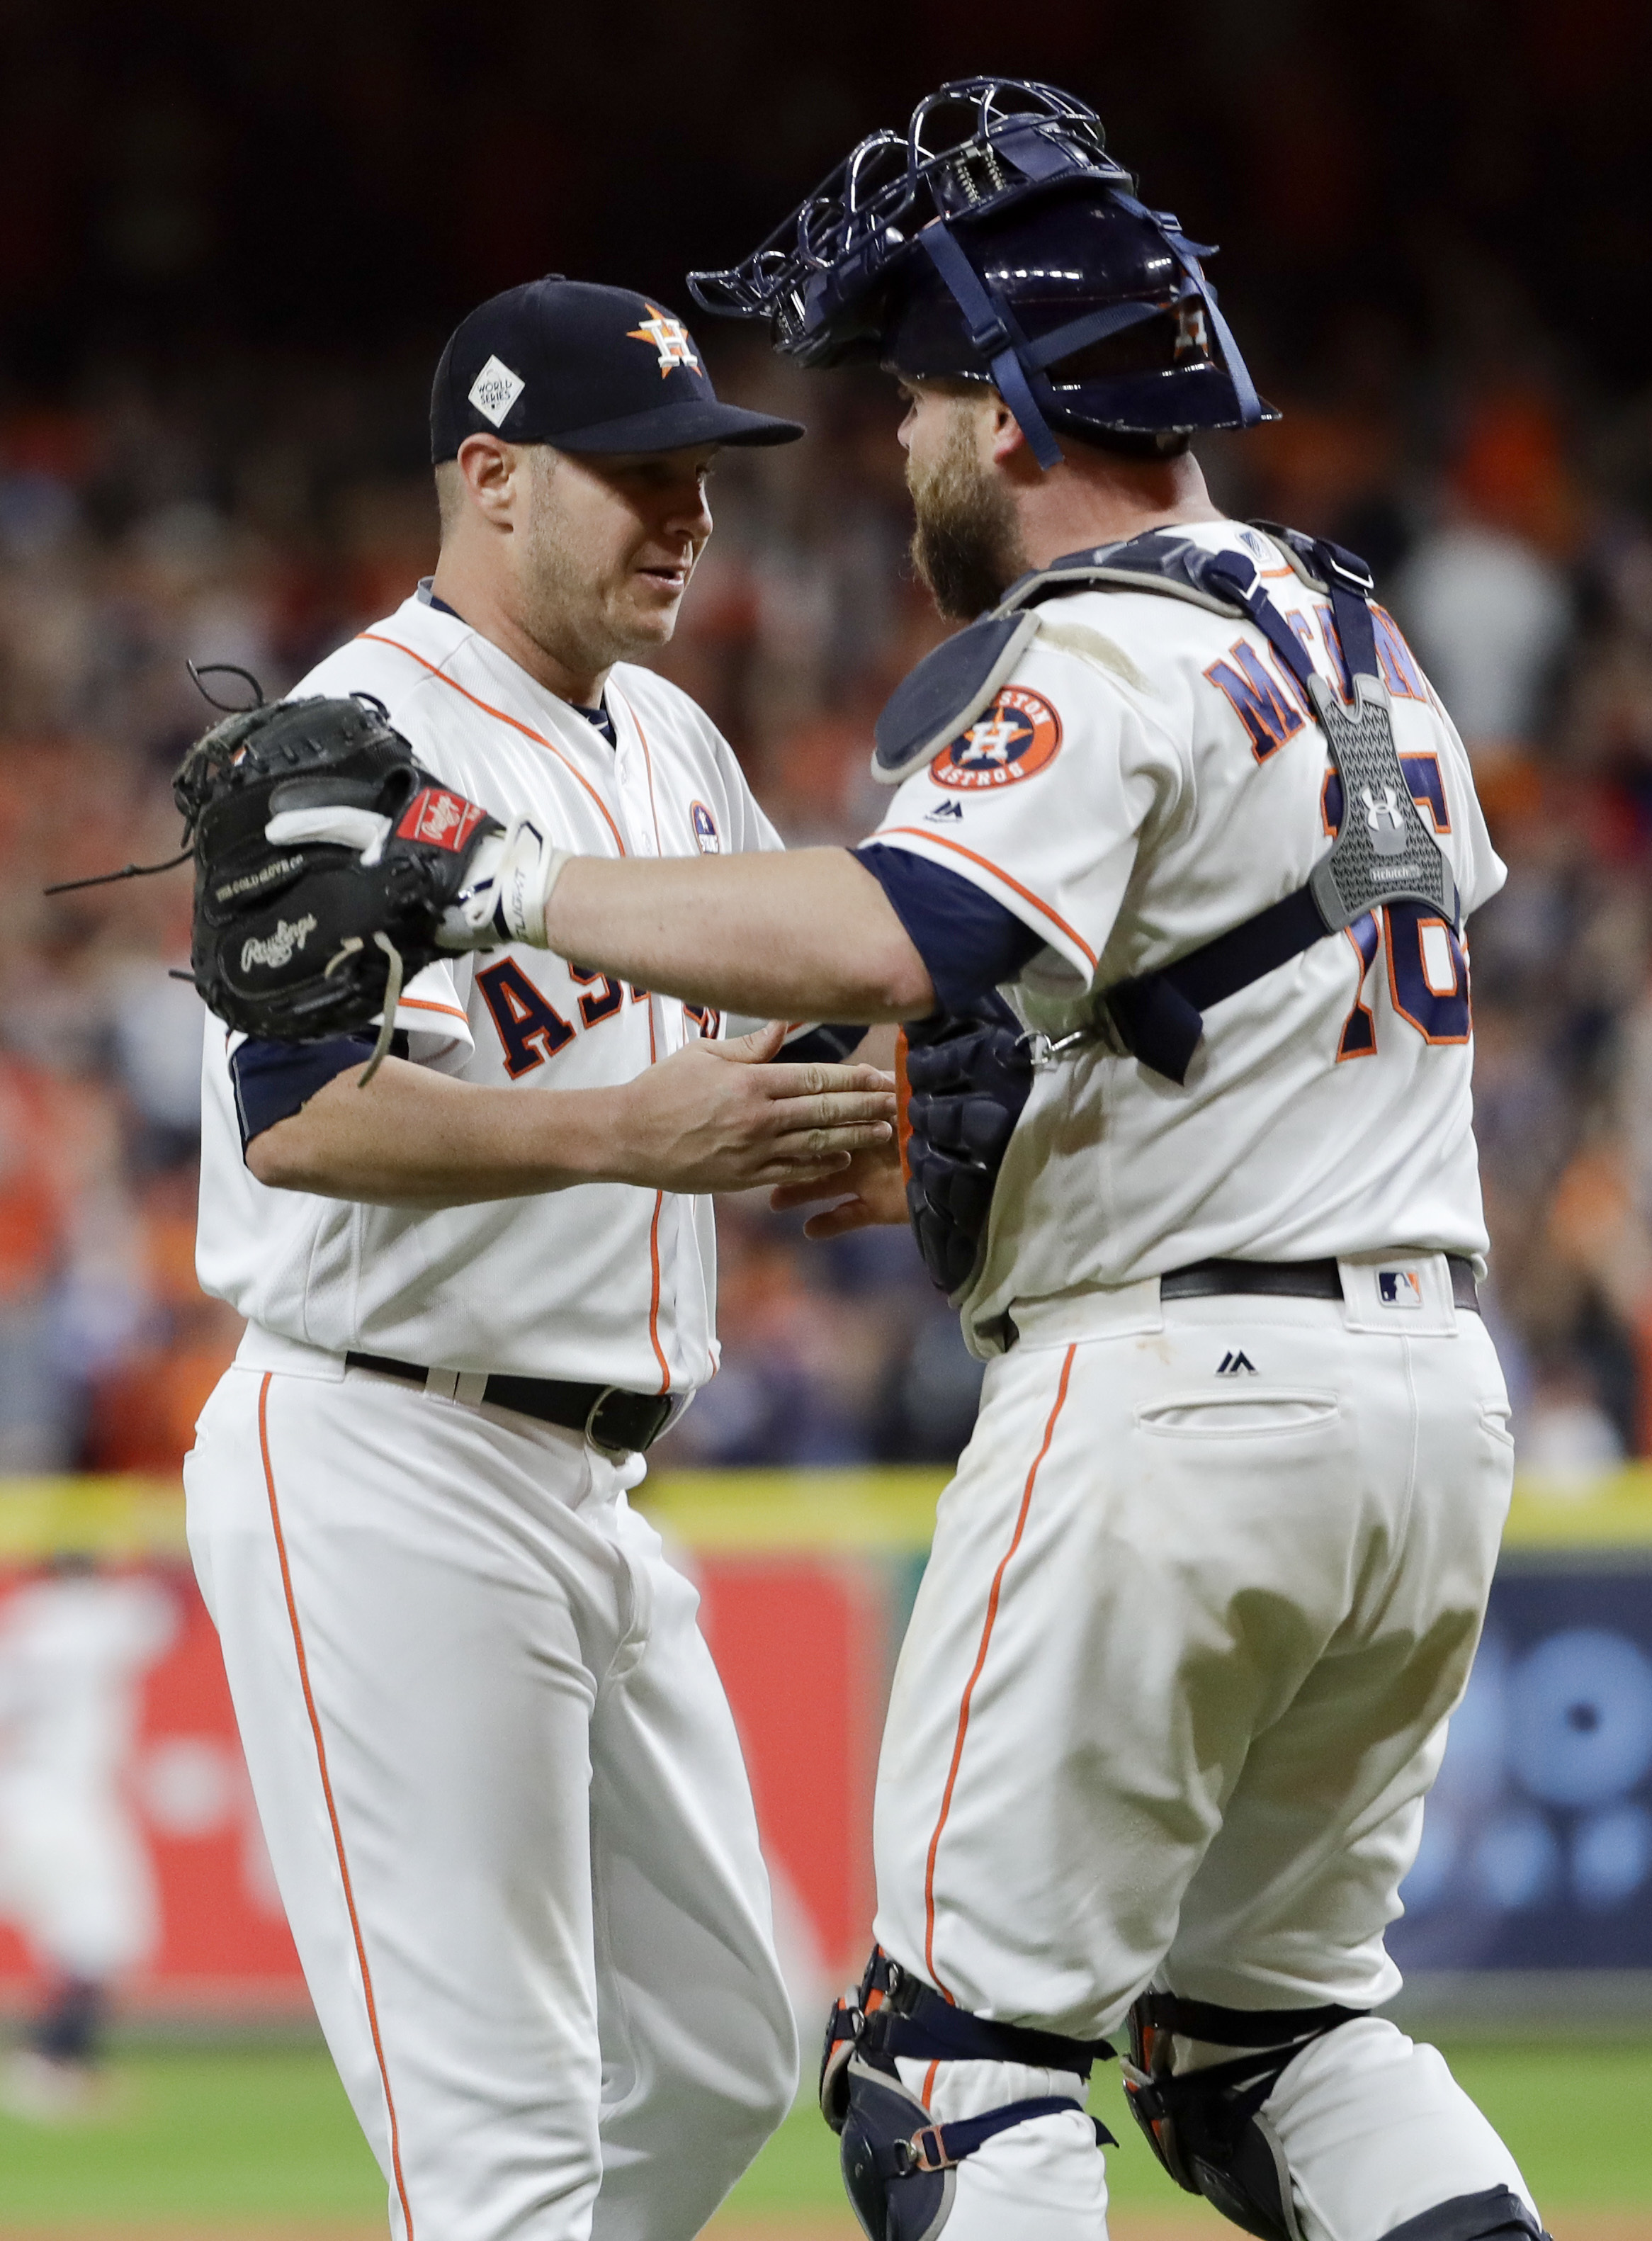 Houston Astros starting pitcher Brad Peacock, left, and catcher Brian McCann celebrate after their win against the Los Angeles Dodgers during Game 3 of baseball's World Series Friday, Oct. 27, 2017, in Houston. The Astros won 5-3 to take a 2-1 lead in the series. (AP Photo/Matt Slocum)